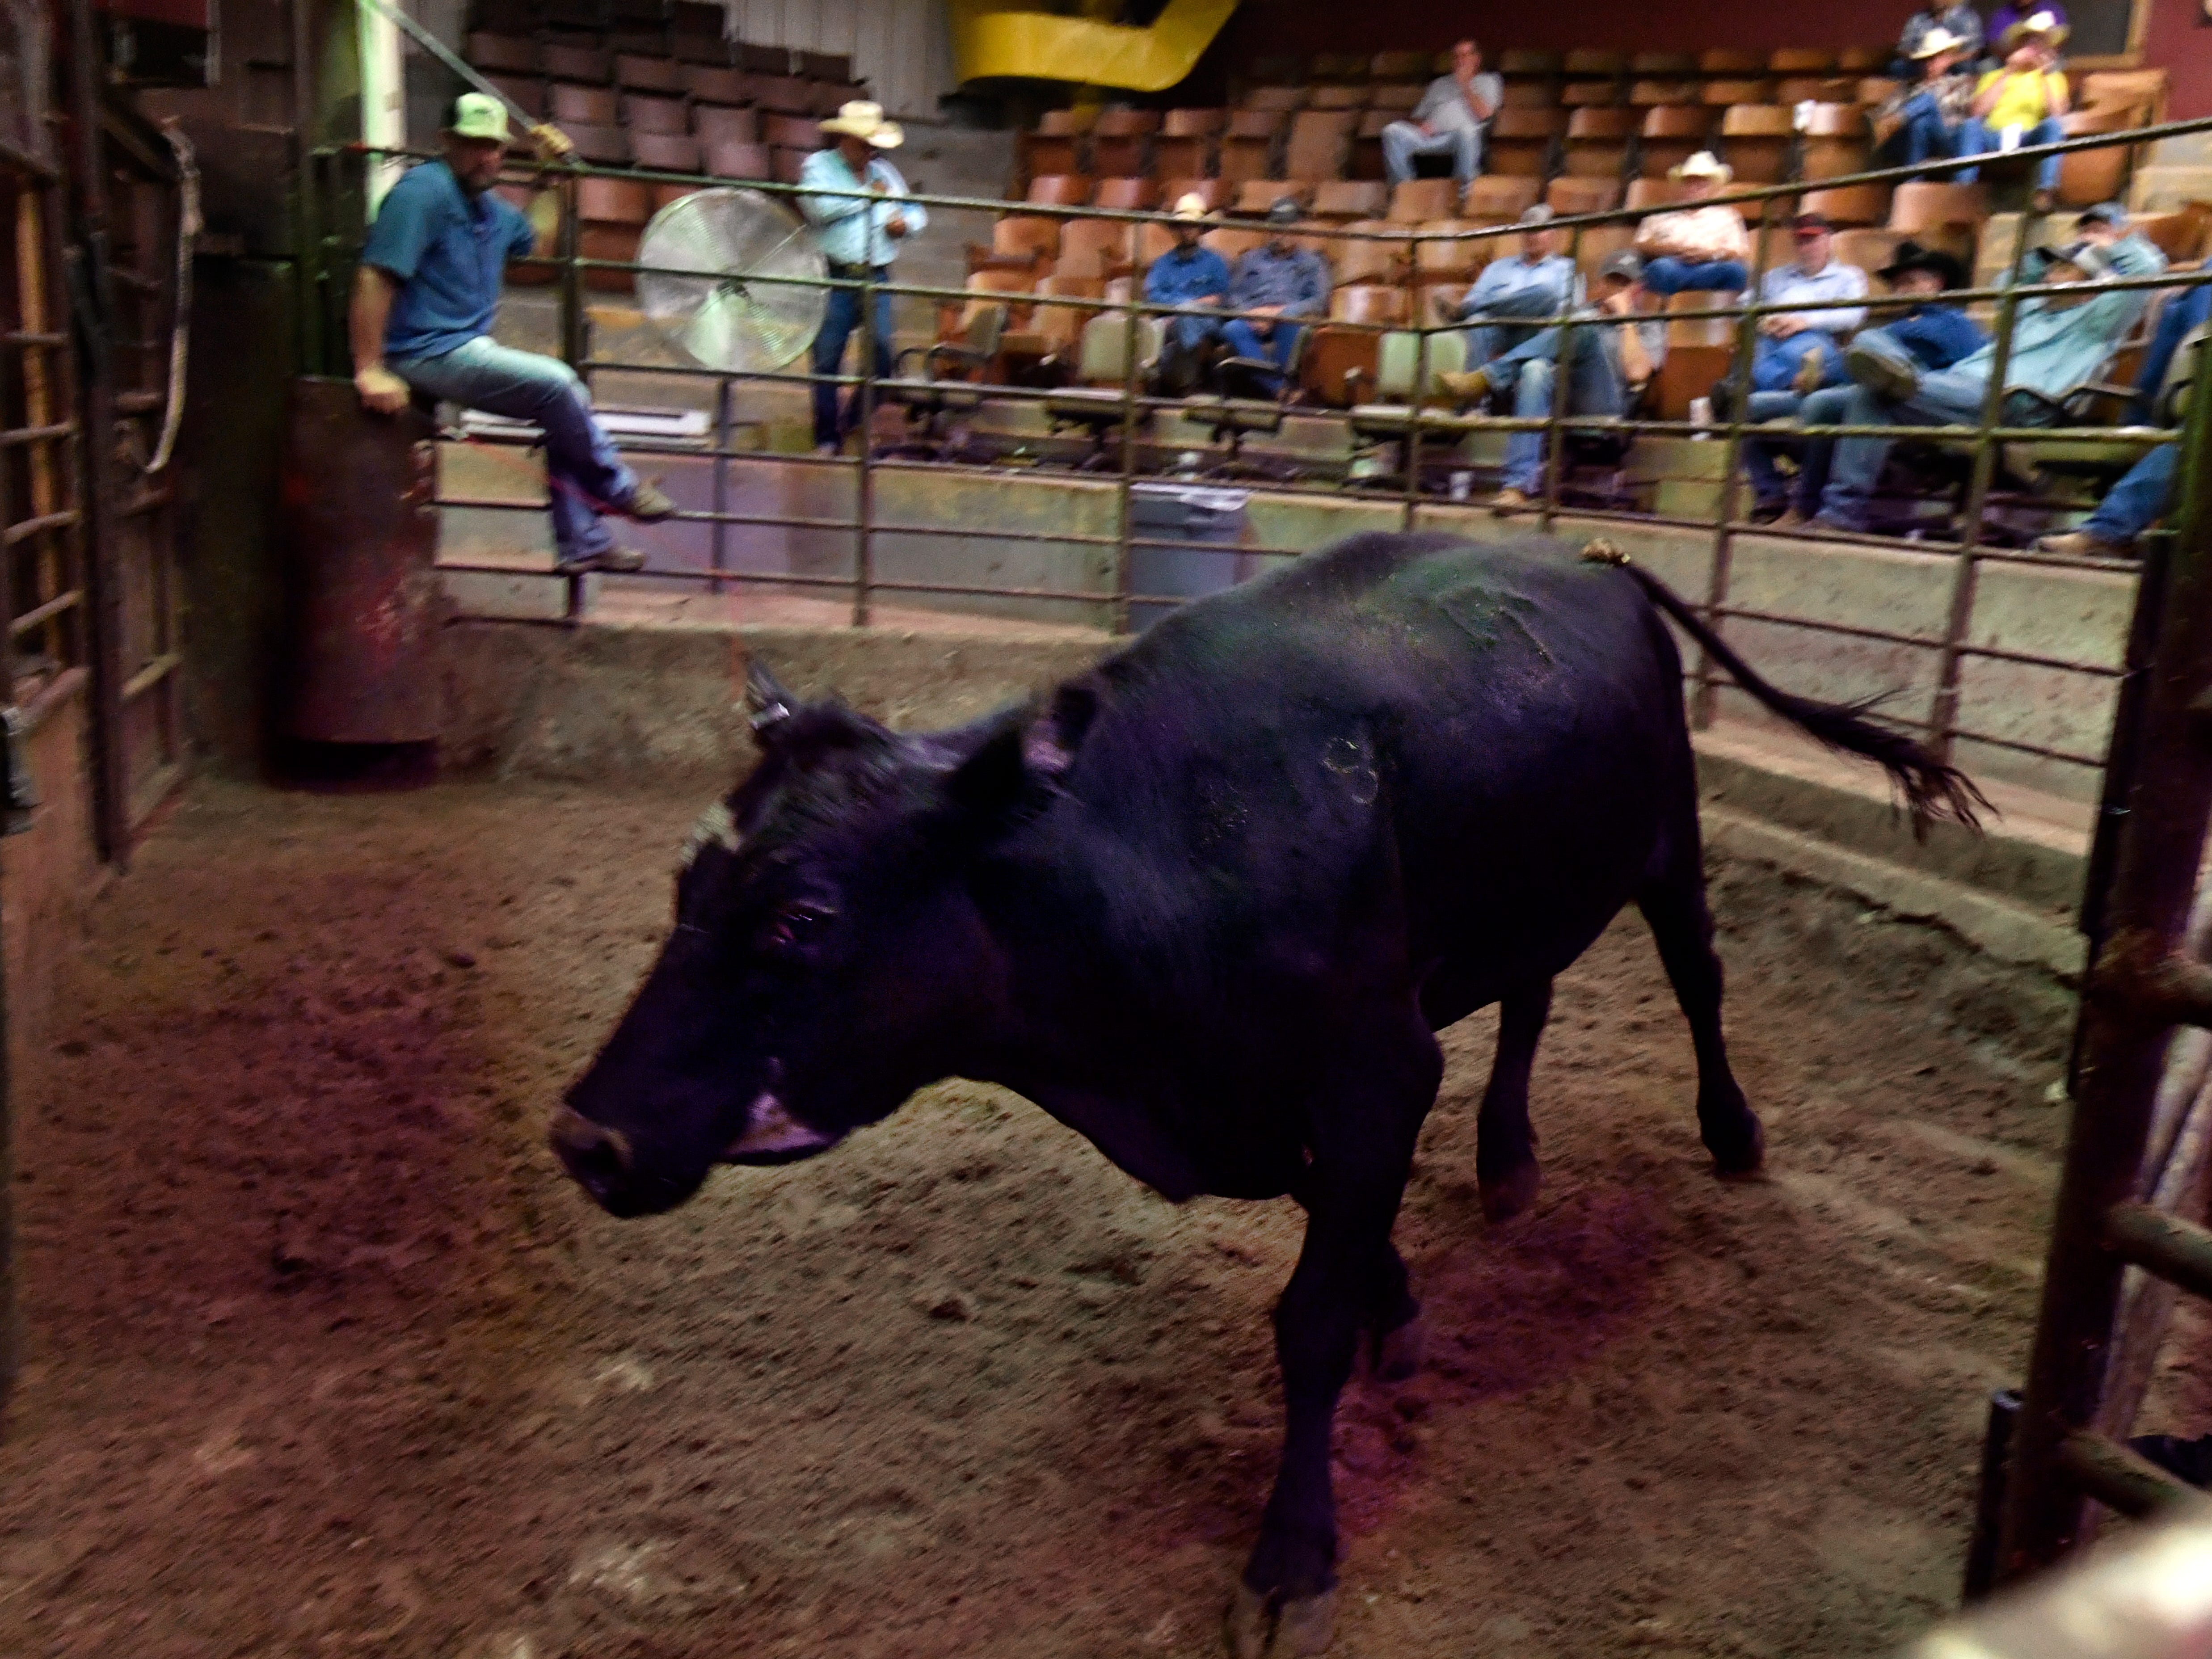 A calf goes back into the pens behind Abilene Livestock Auction Tuesday Sept. 4, 2018 after being sold. Drought, a lack of forage in pastures, and the high price and scarcity of hay are driving some cattle producers into culling their herds. But many are counting on a wet winter to bring pastures and hay stores back to full strength.